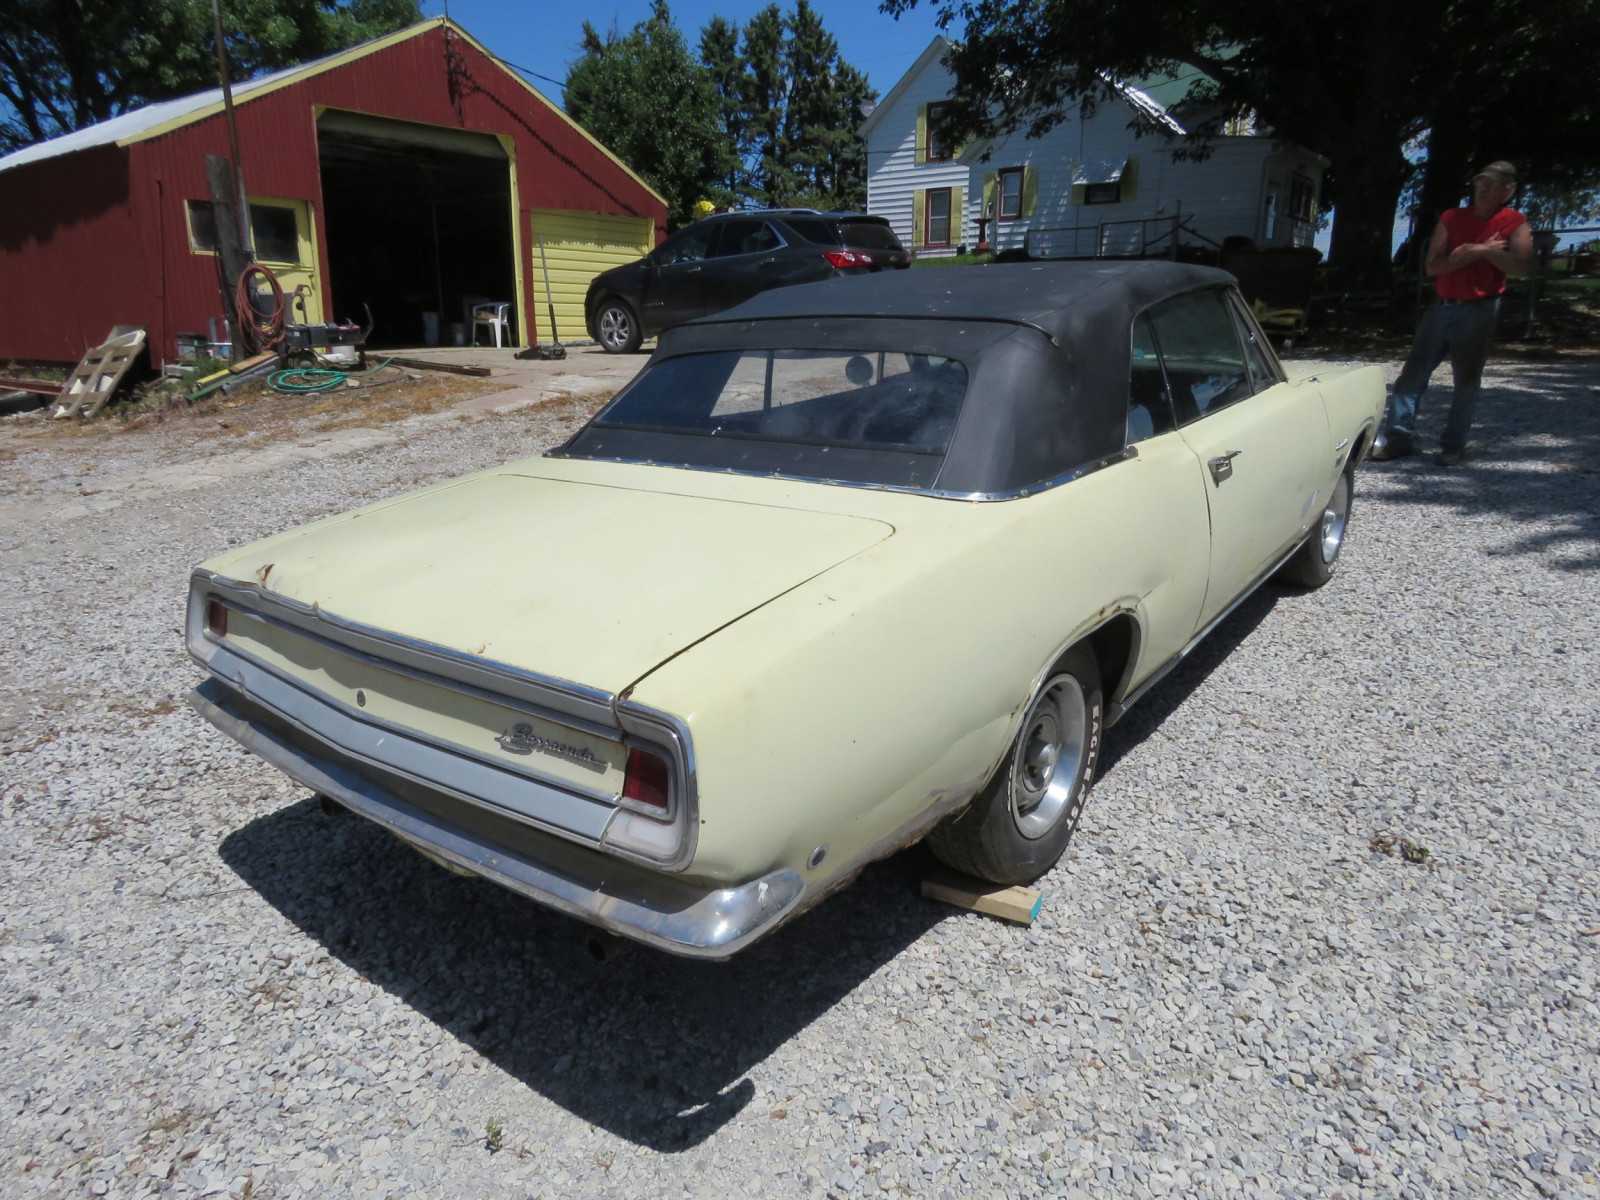 1968 Plymouth Barracuda Convertible - Image 6